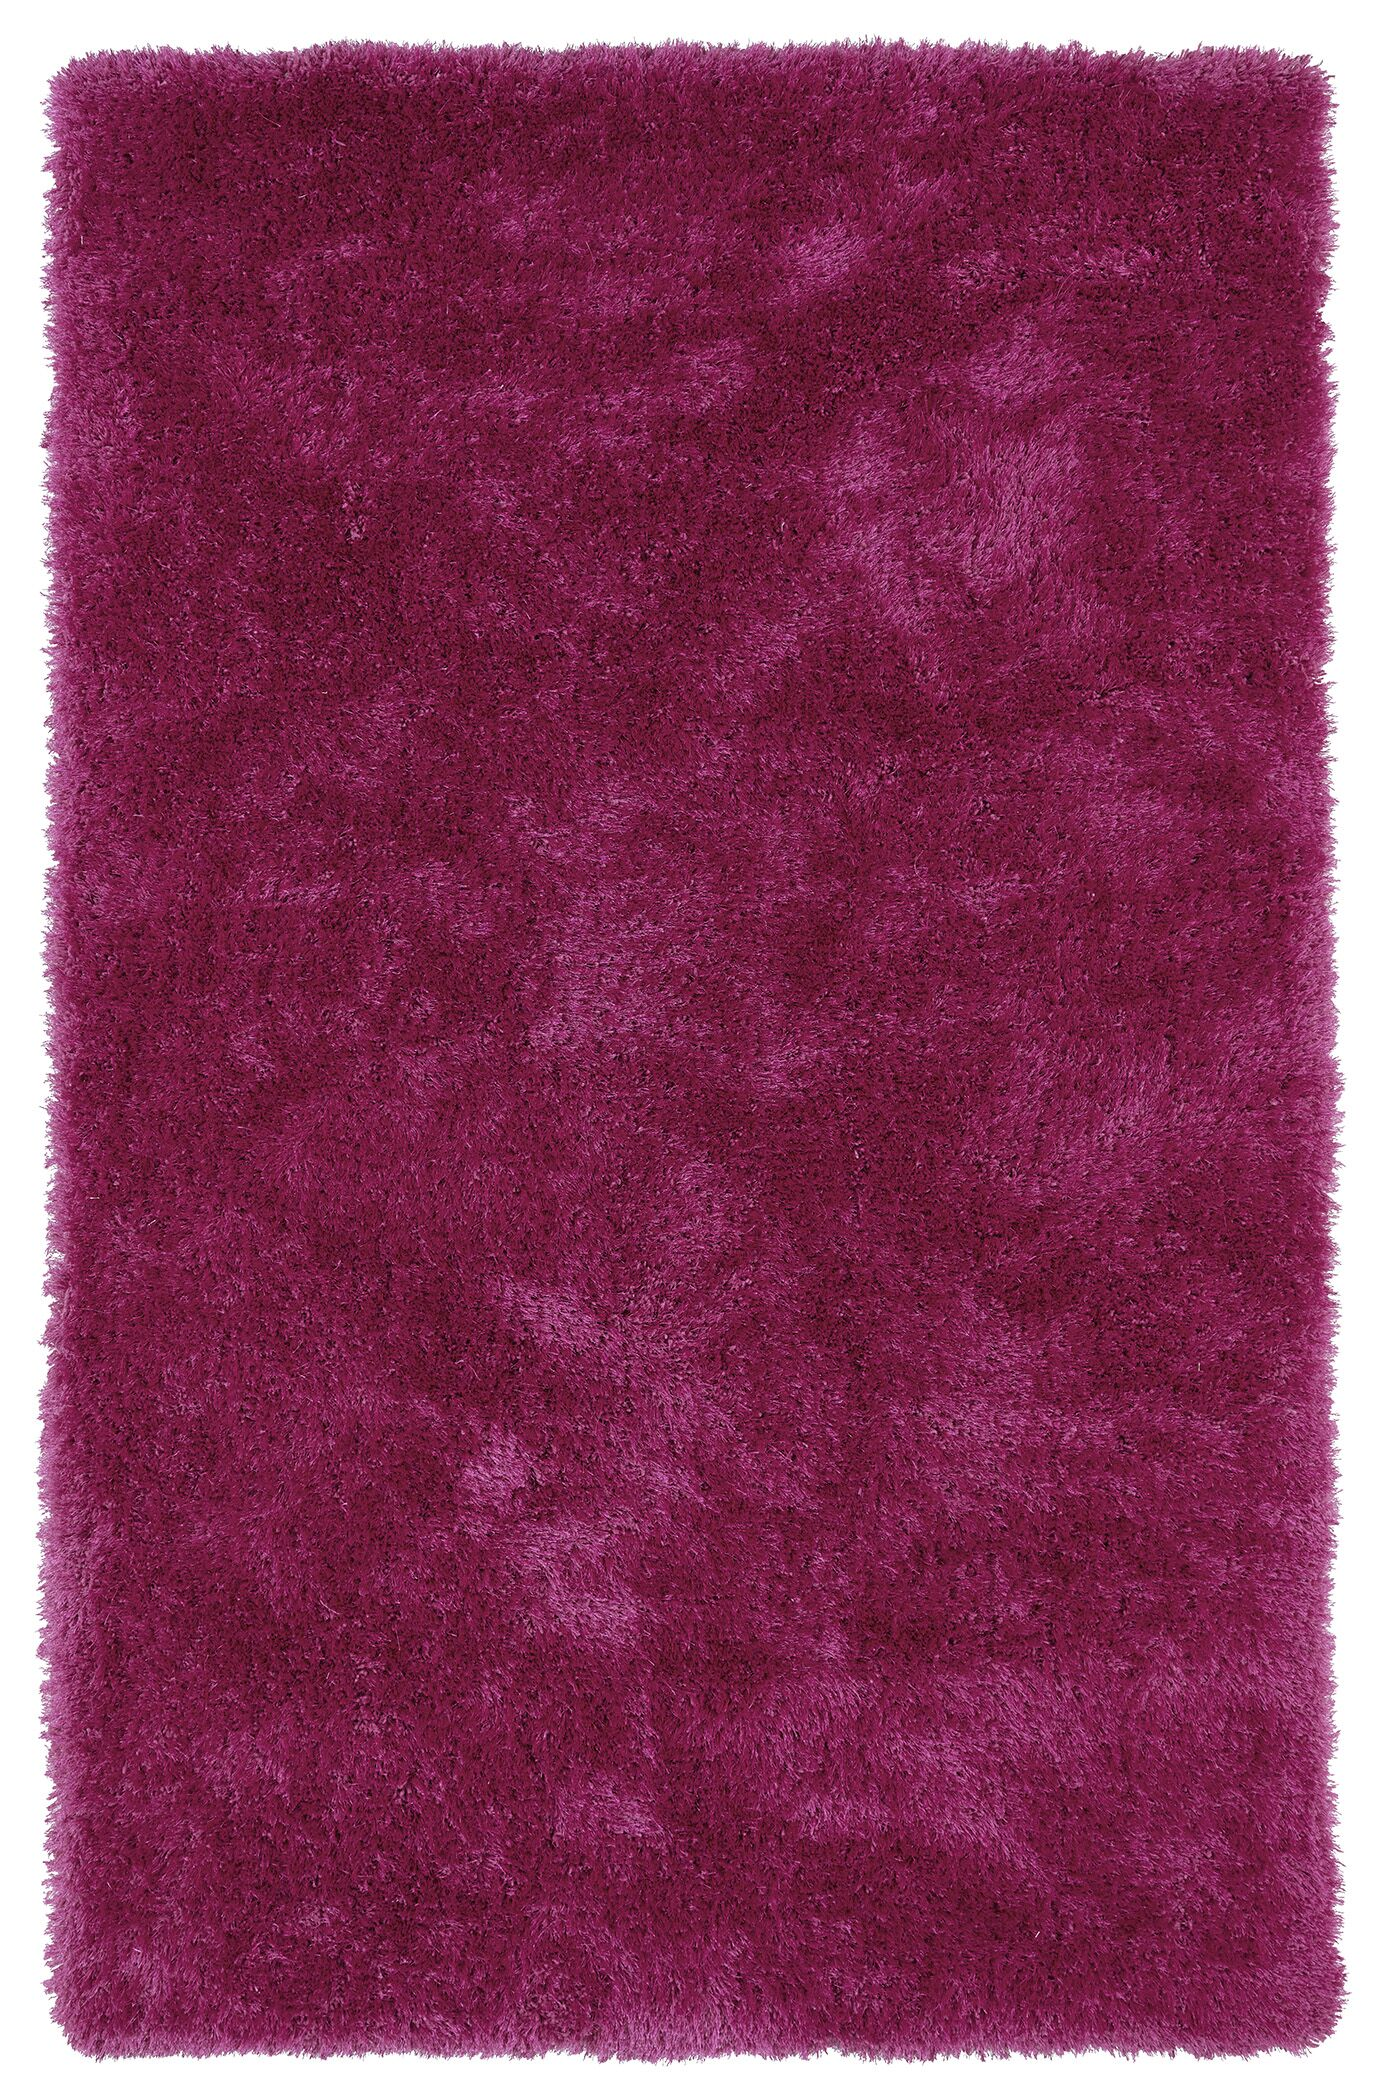 Caine Pink Area Rug Rug Size: Rectangle 5' x 7'